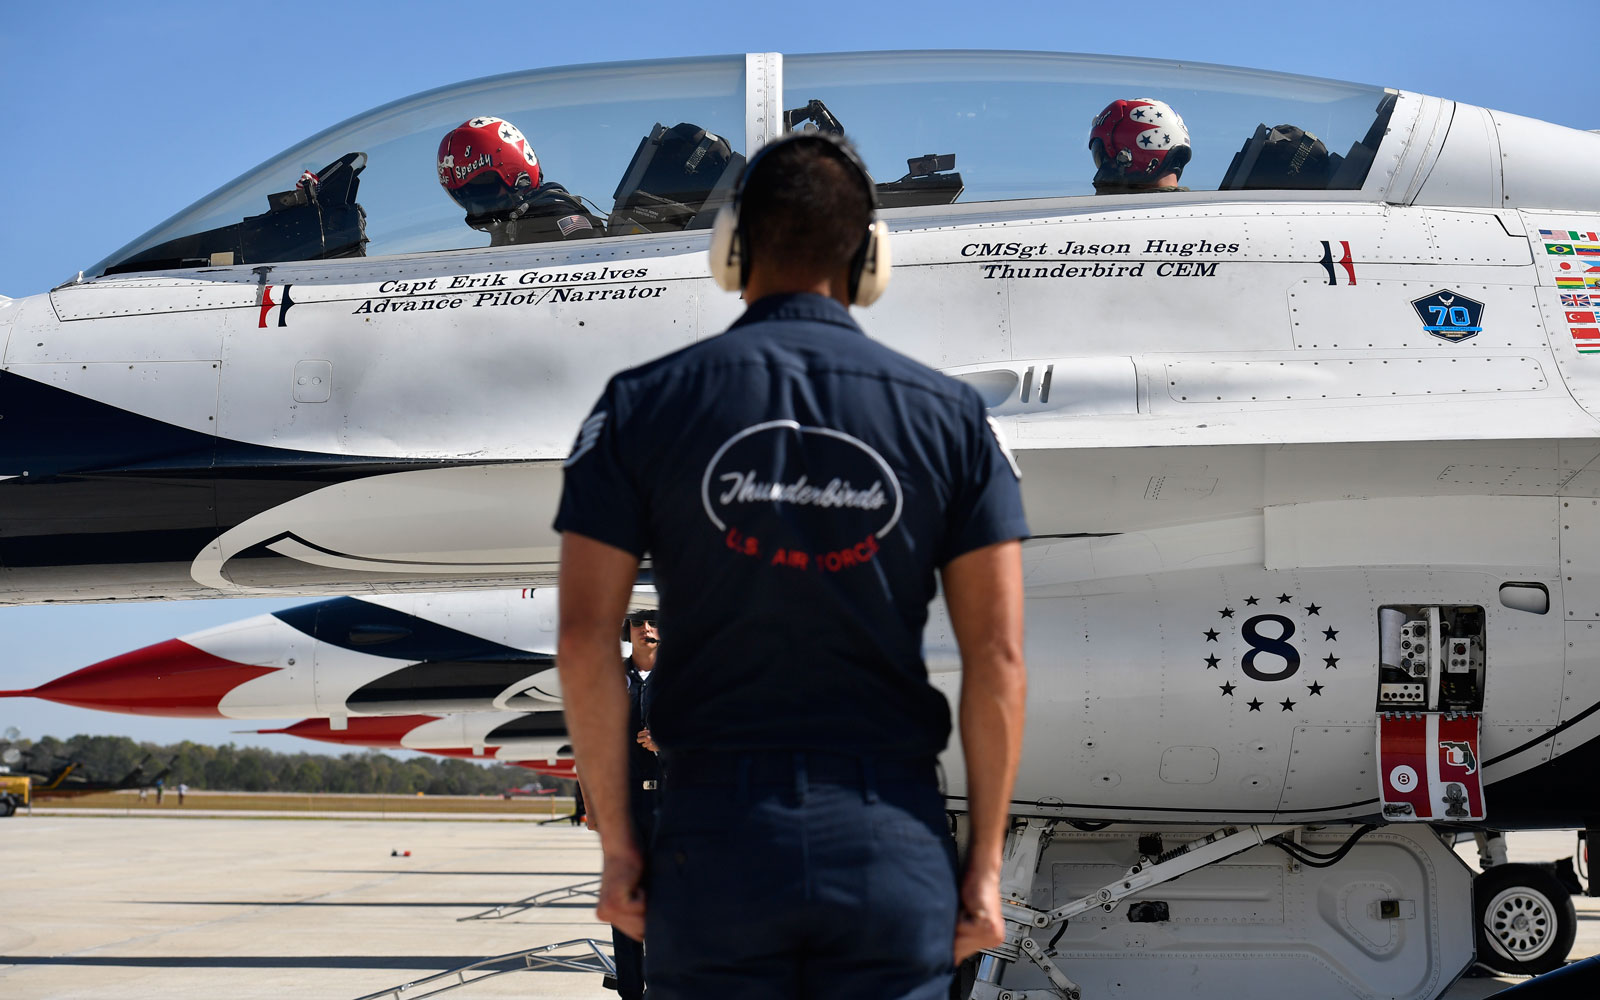 thunderbirds member in front of plane